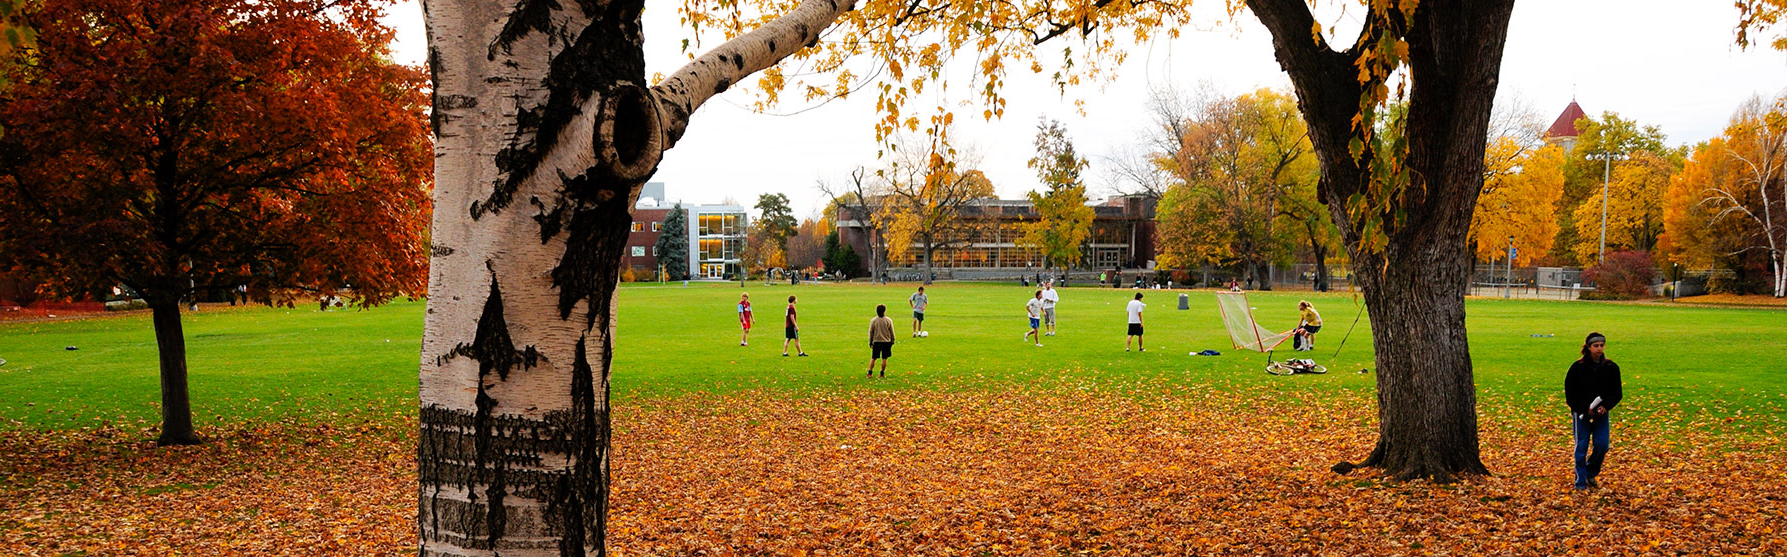 Ankeny field with students playing during the Fall